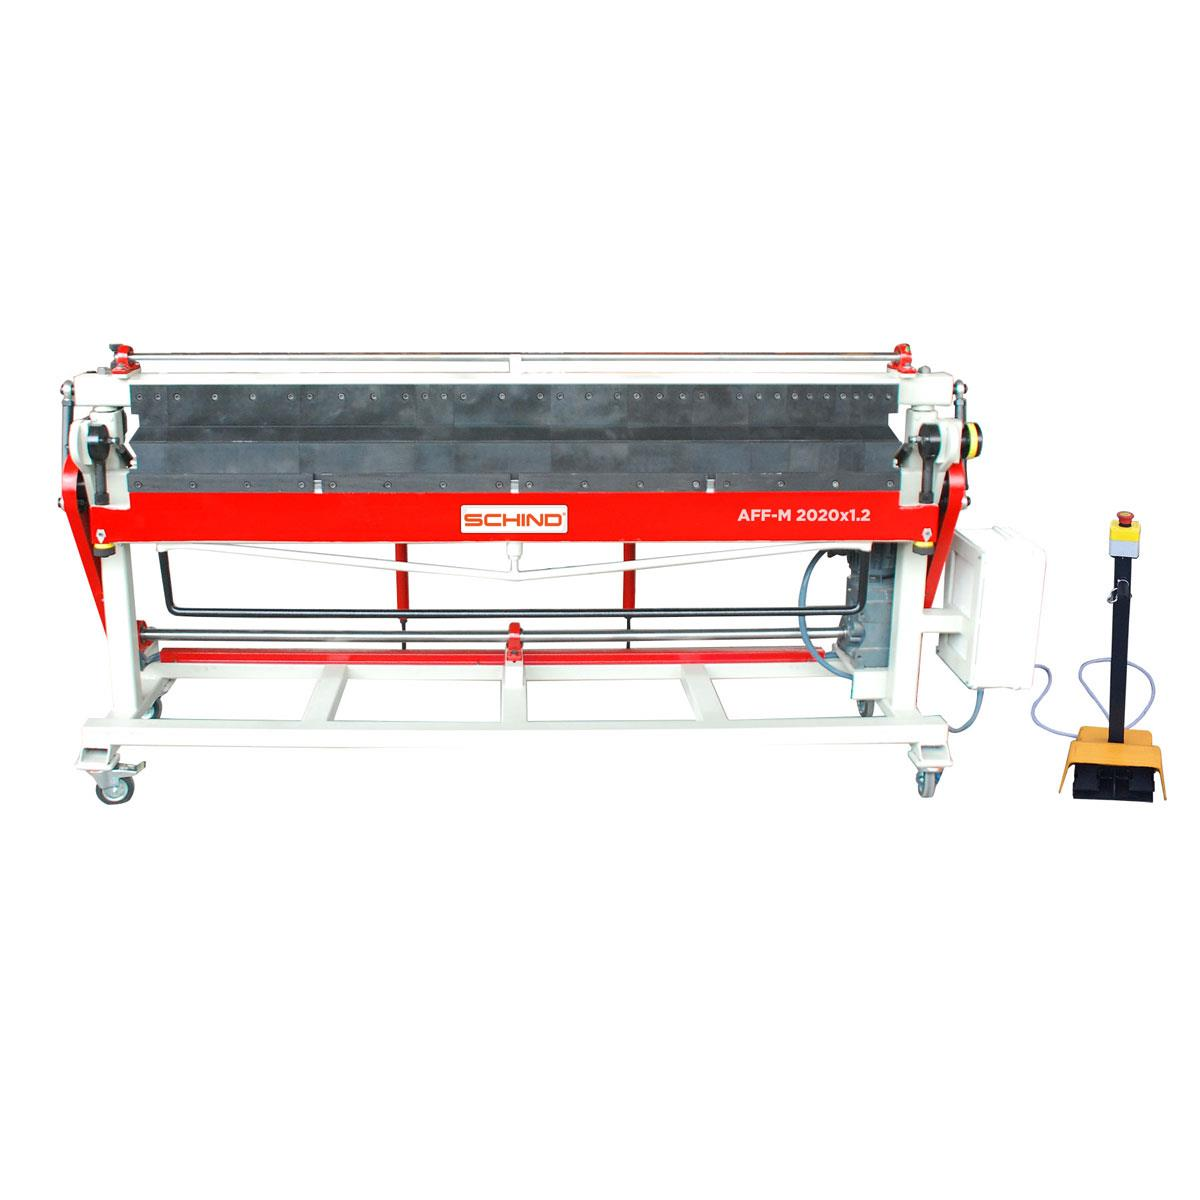 SCHIND AFF-M Motorized Vertical Top-Bottom Segmented Blades Box and